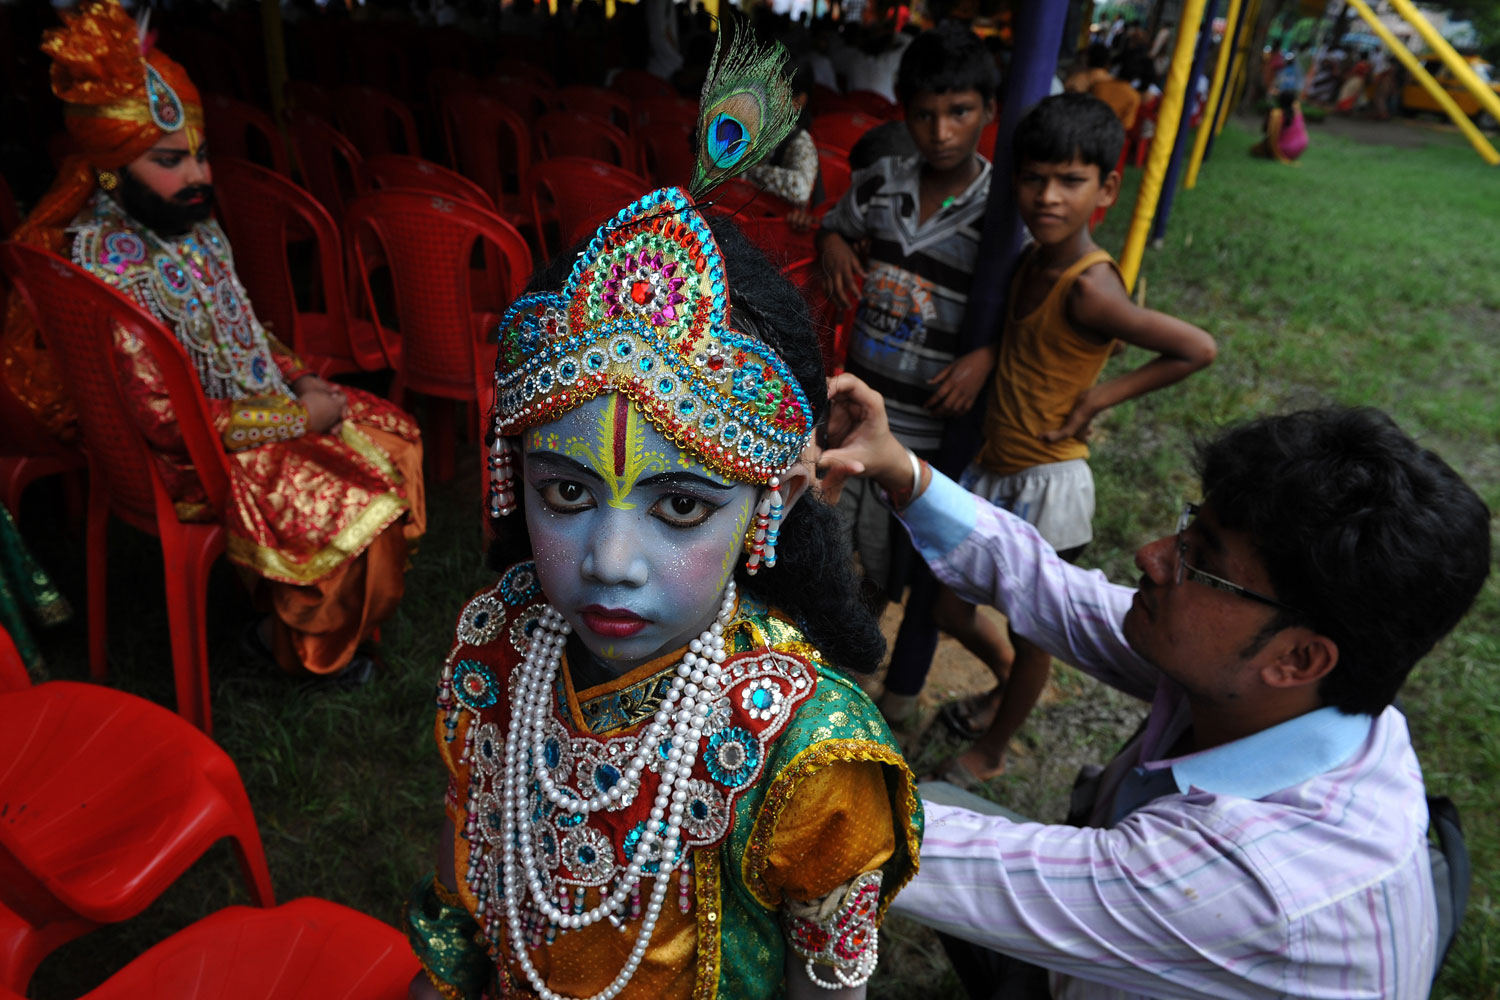 July 3, 2011. A young Indian Hindu devotee looks at the camera while being dressed as Lord Krishna as she waits to participate in the  Rath Yatra , along with Sri Krishna devotees from the International Society for Krishna Consciousness (ISKCON), in Kolkata. According to mythology, the Rath Yatra dates back some 5,000 years when Hindu God Krishna along with his older brother Balaram and sister Subhadra were pulled on a chariot from Kurukshetra to Vrindavana by Krishna's devotees.